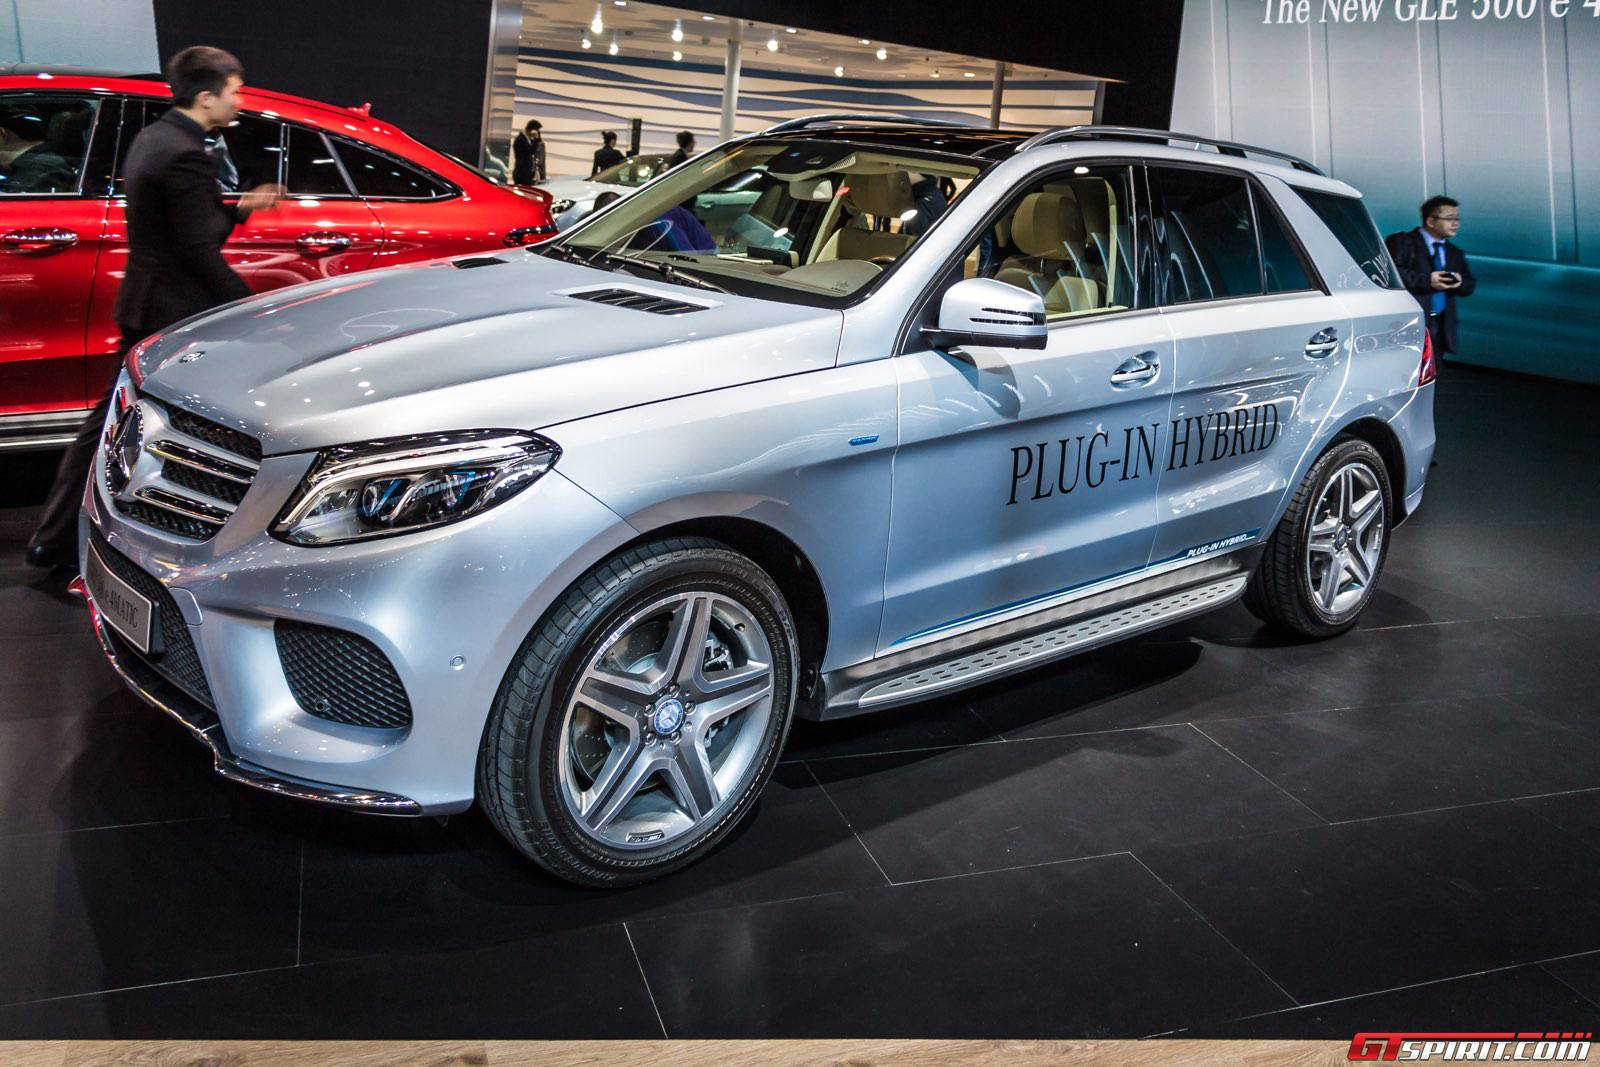 Shanghai 2015 mercedes benz gle500e plug in hybrid gtspirit for Mercedes benz hybrids